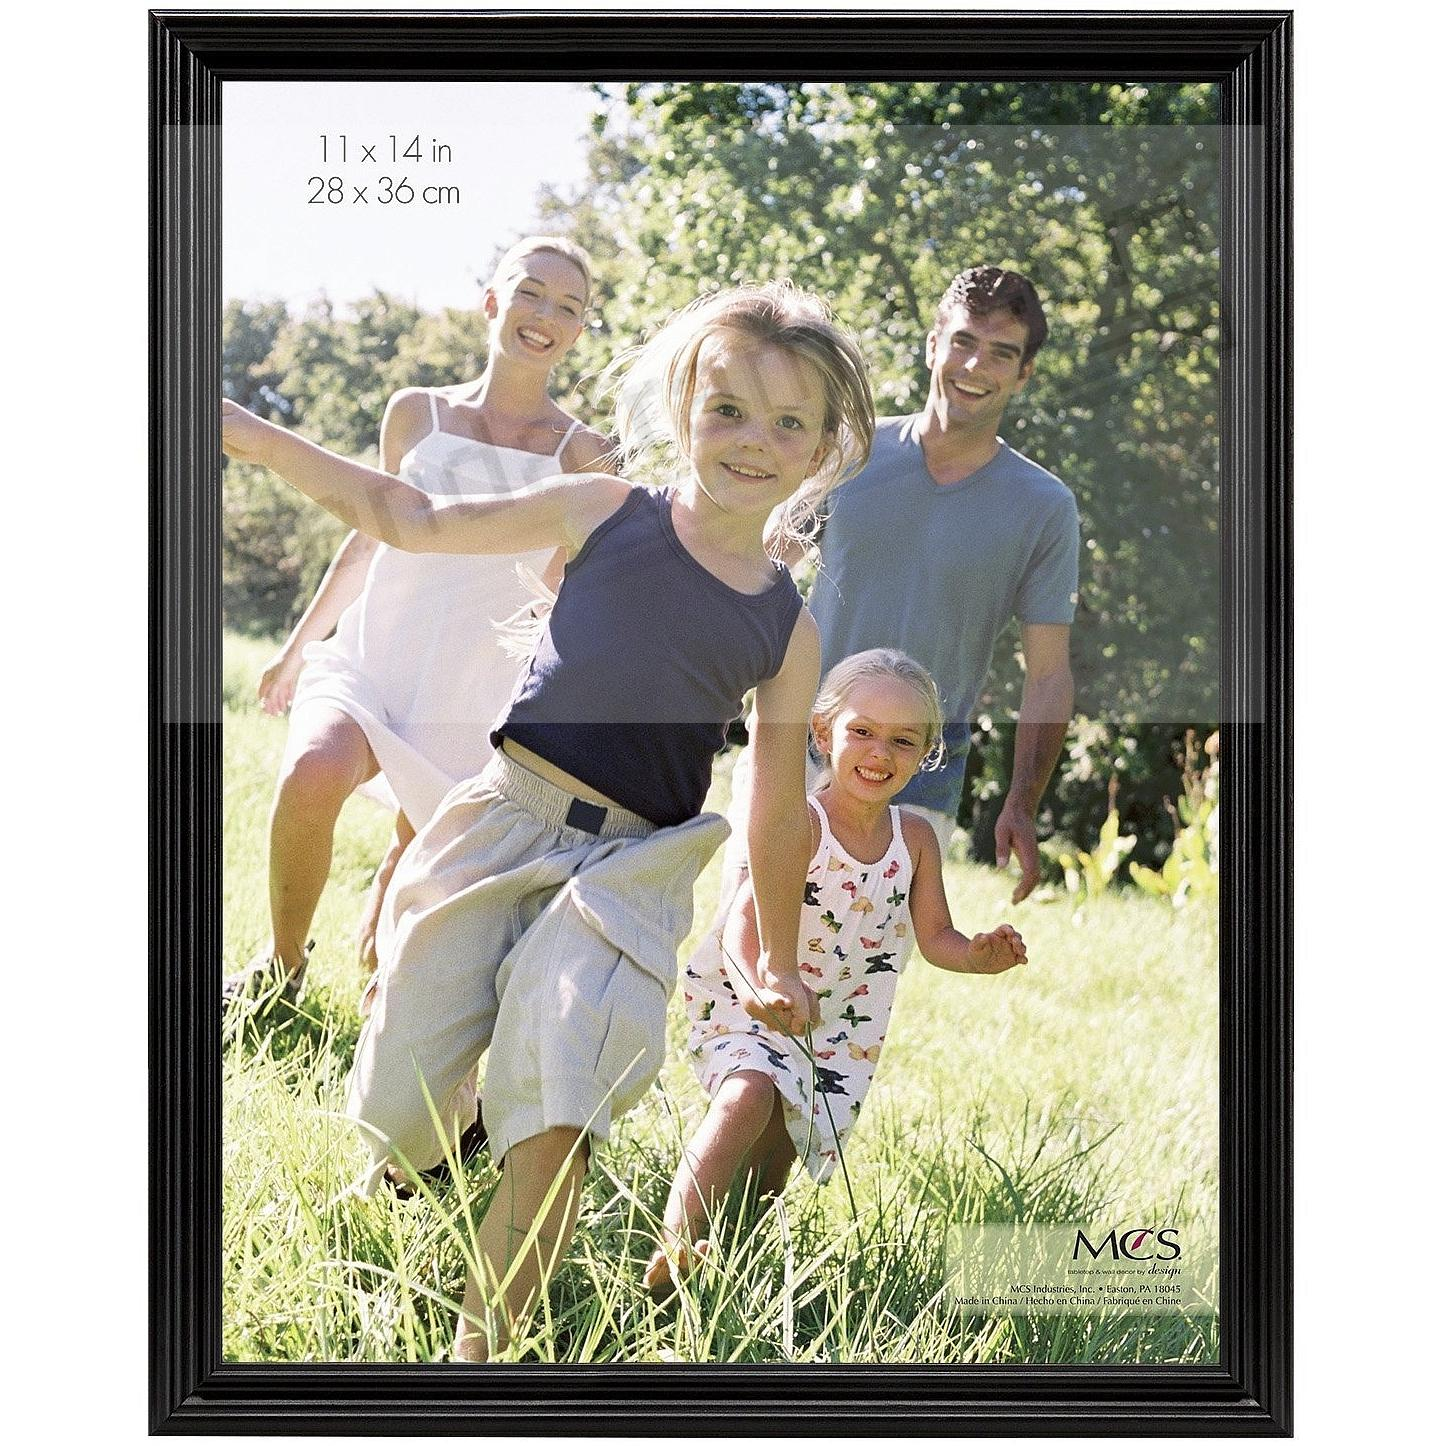 STYLE ONE Black solid wood wall frame from MCS®